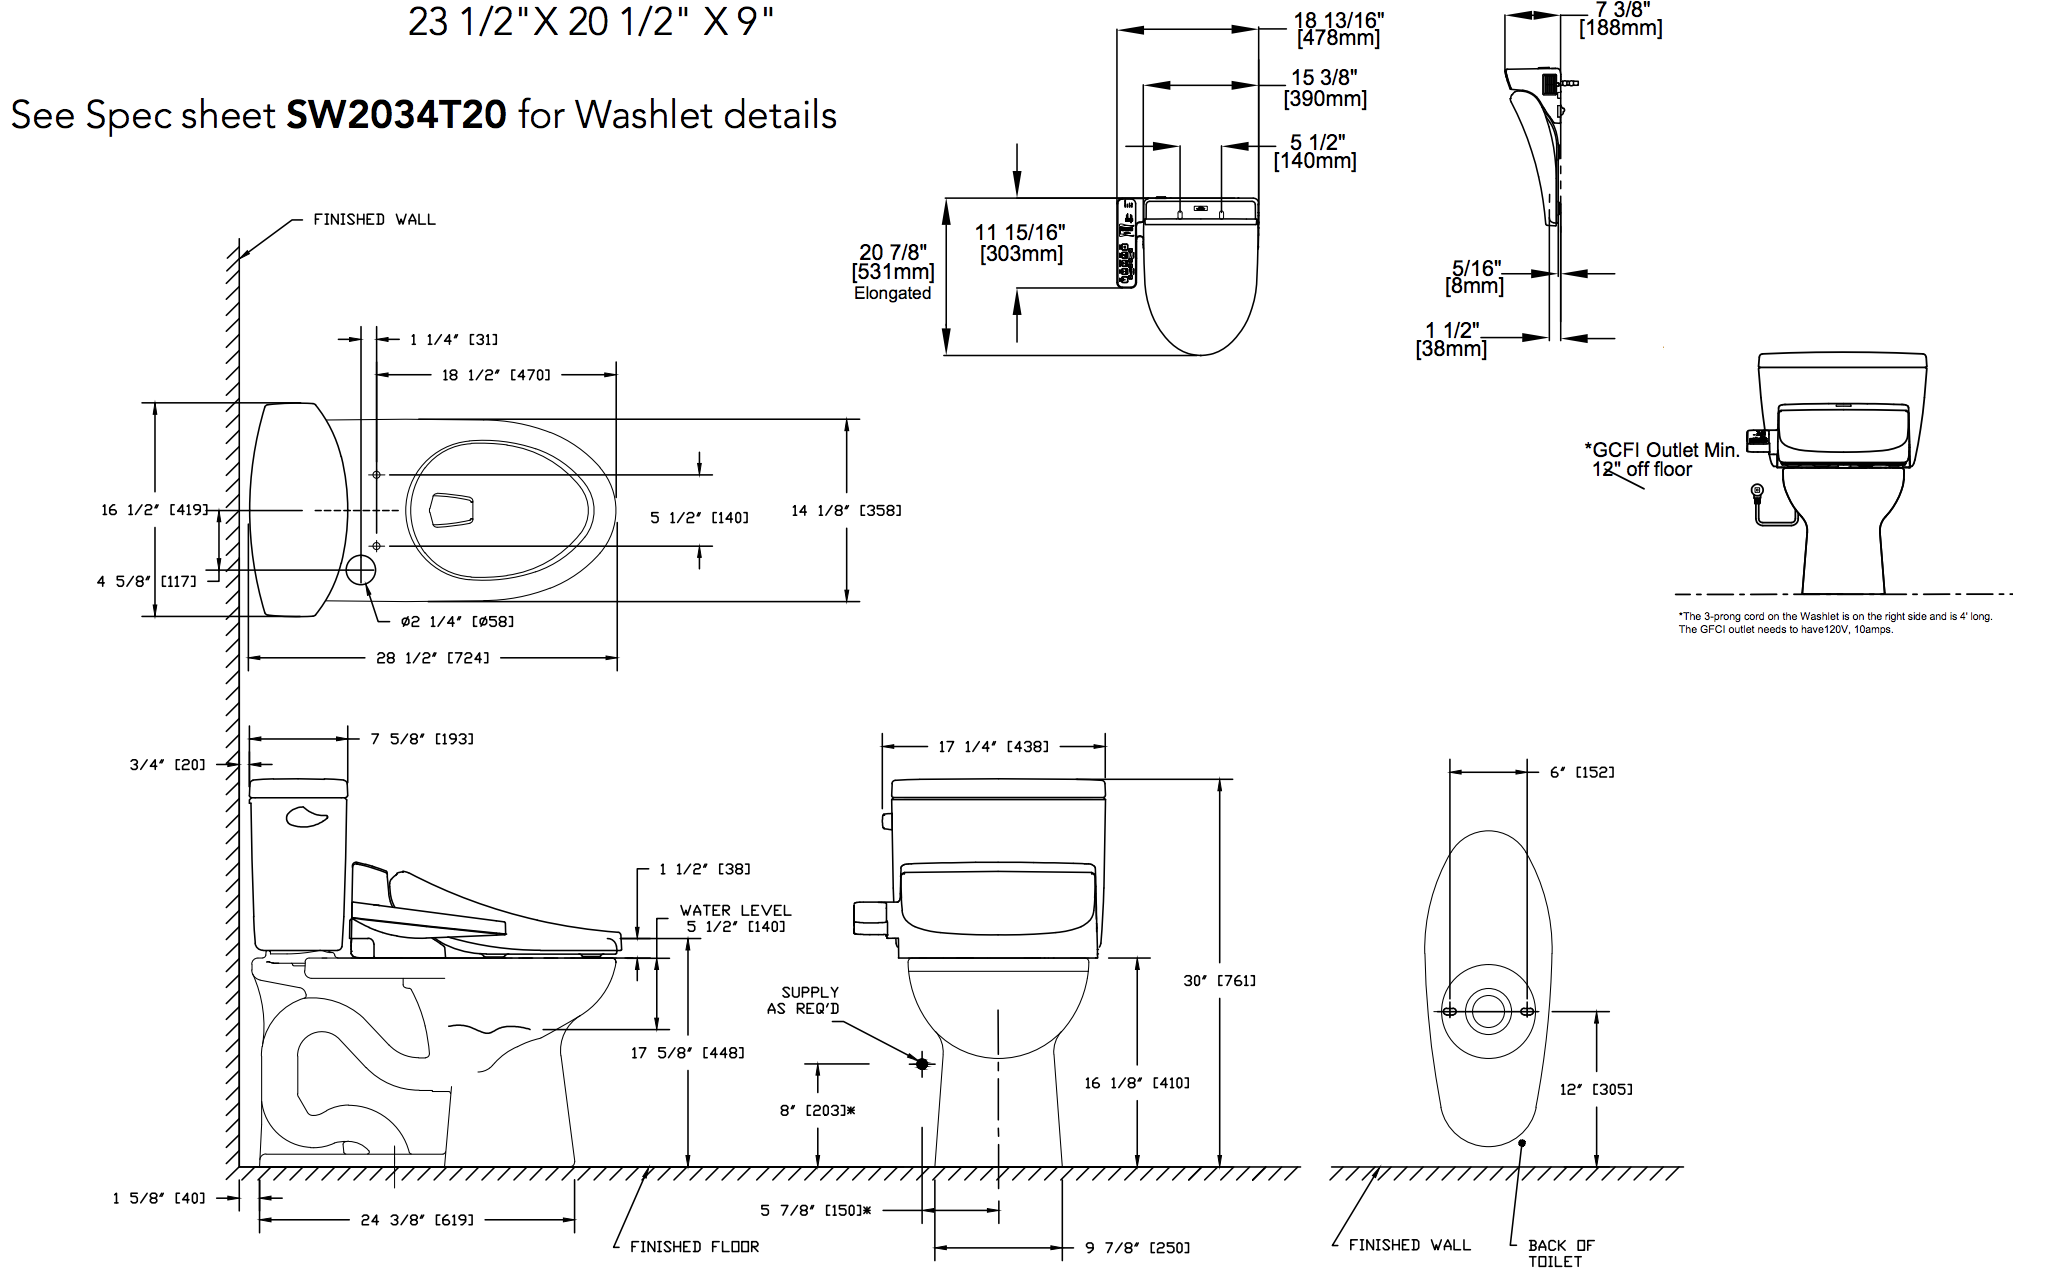 drake-ii-washlet-c100-two-piece-toilet-1.28-gpf-diagram.png